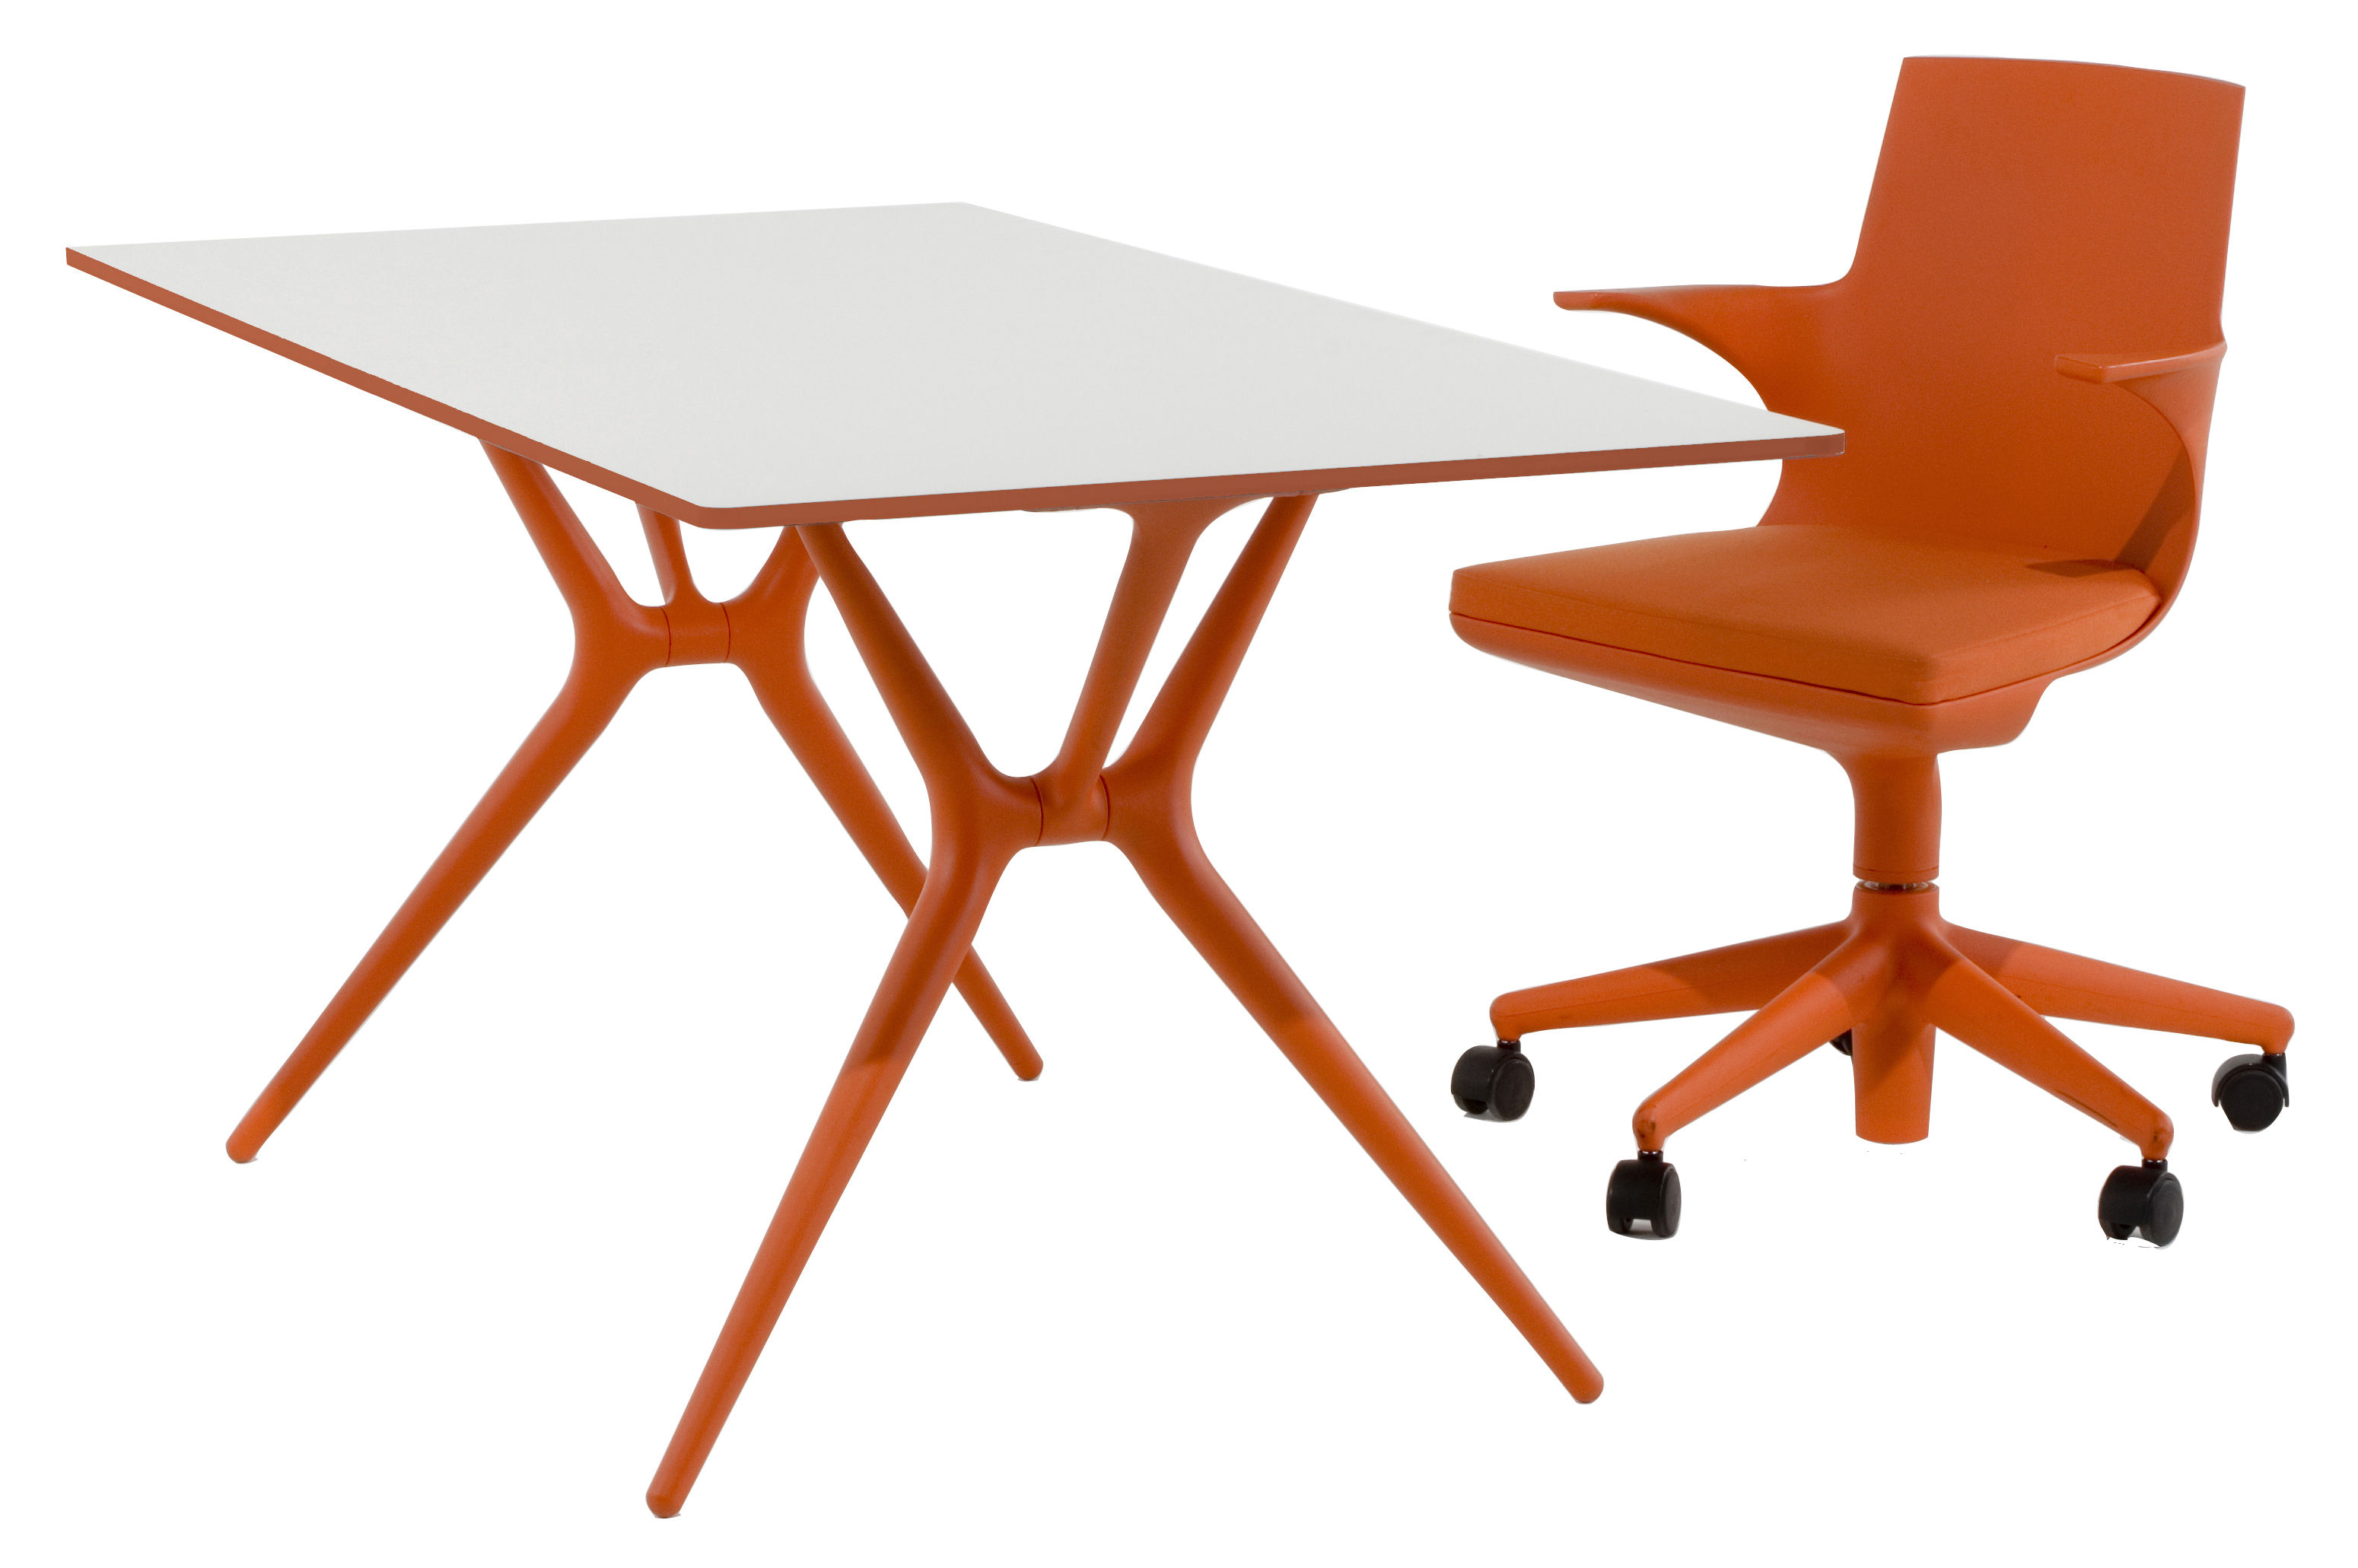 spoon foldable table 200 x 90 cm white orange feet by kartell. Black Bedroom Furniture Sets. Home Design Ideas